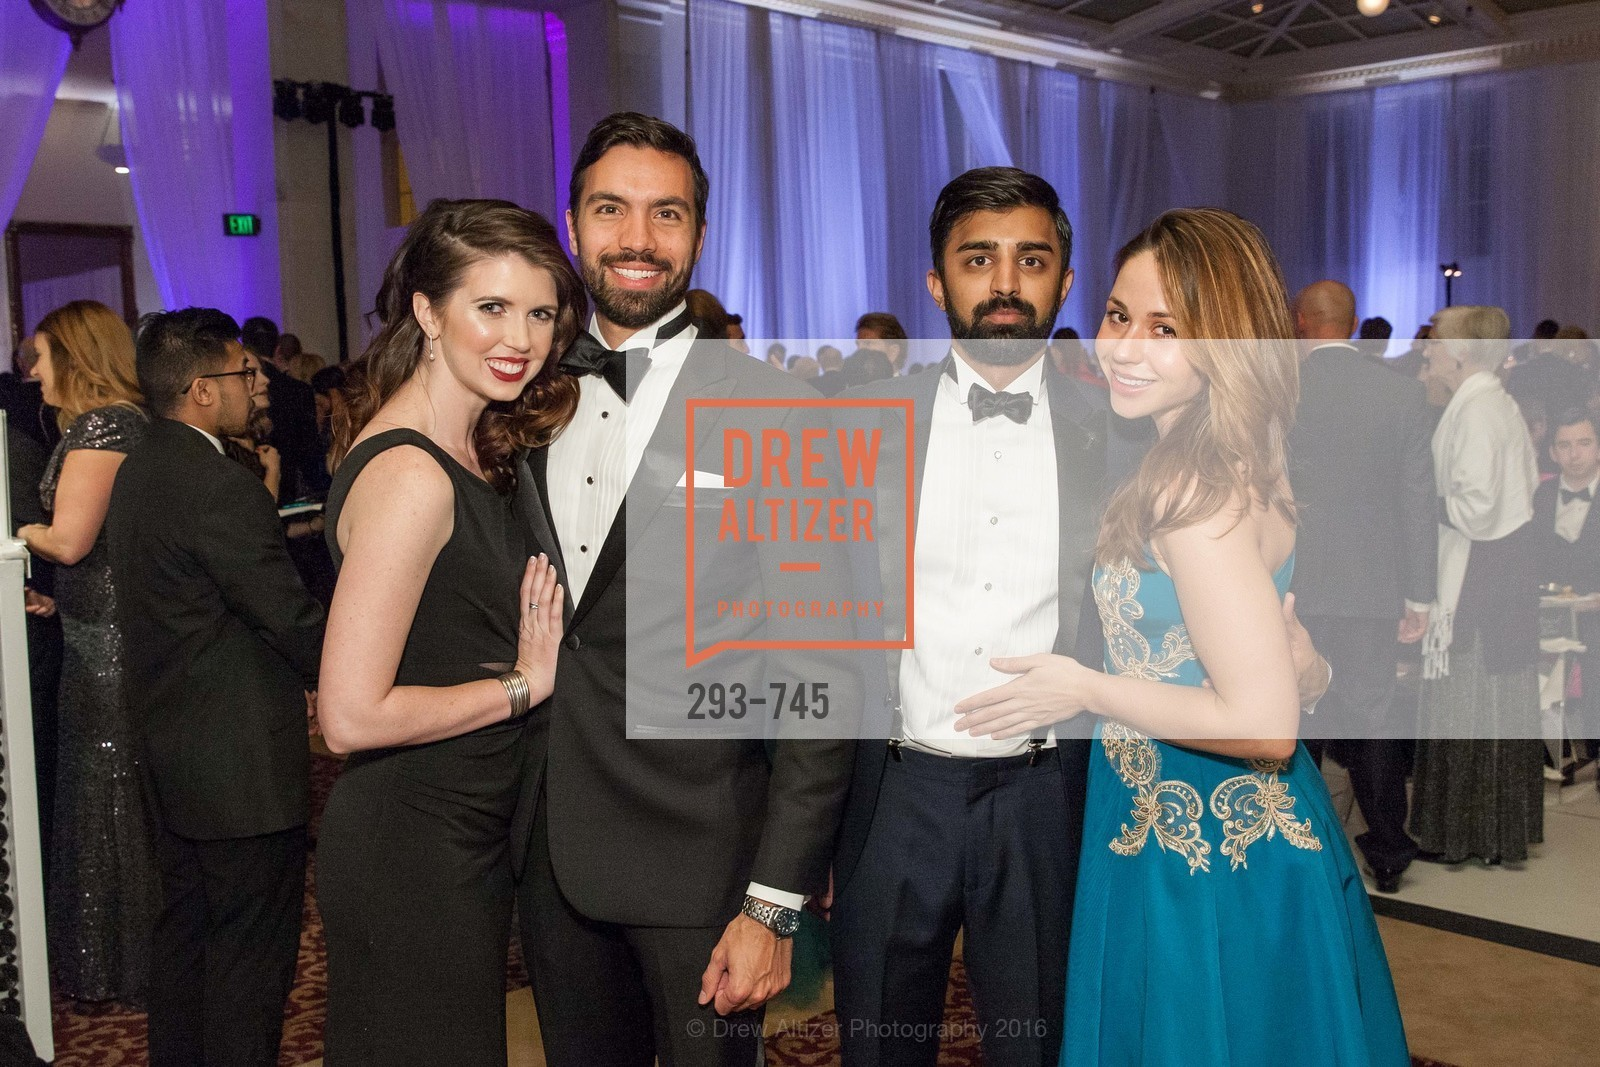 Kelly Williams, Olivier Courtemanche, Rishi Dixit, Elizabeth Chabot, San Francisco Ballet 2016 Opening Night Gala Part 2, San Francisco City Hall, January 21st, 2016,Drew Altizer, Drew Altizer Photography, full-service agency, private events, San Francisco photographer, photographer california